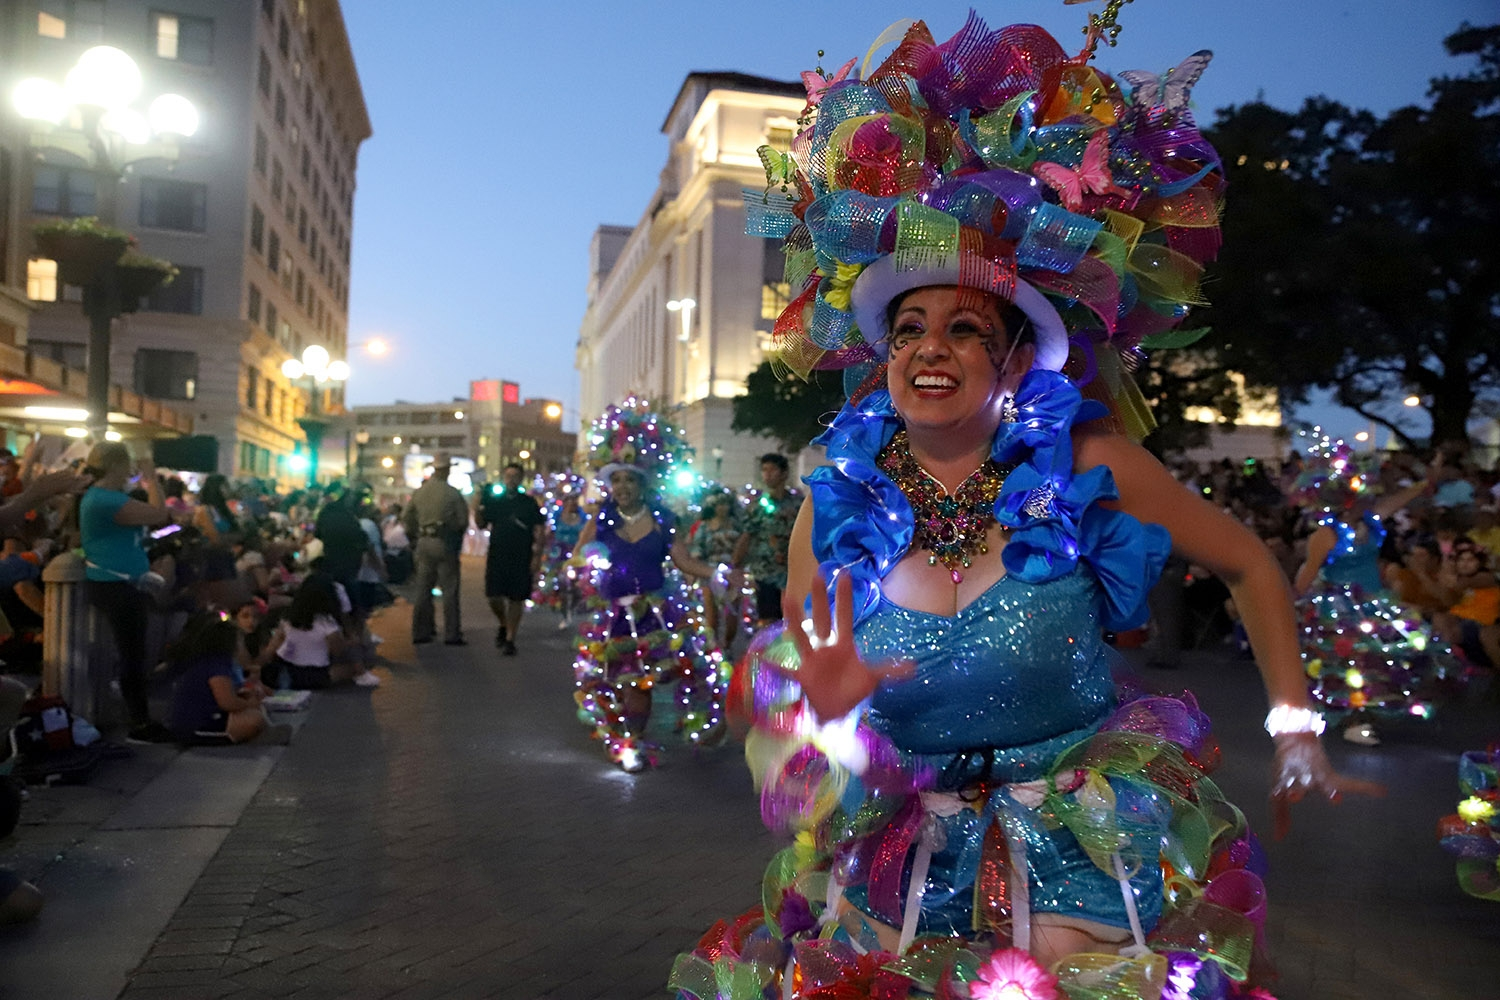 A Las Charangas dancer shows off her moves down Alamo Plaza in the Flambeau Parade on Saturday. <em>Photo by Brianna Rodrigue | Heron contributor</em>